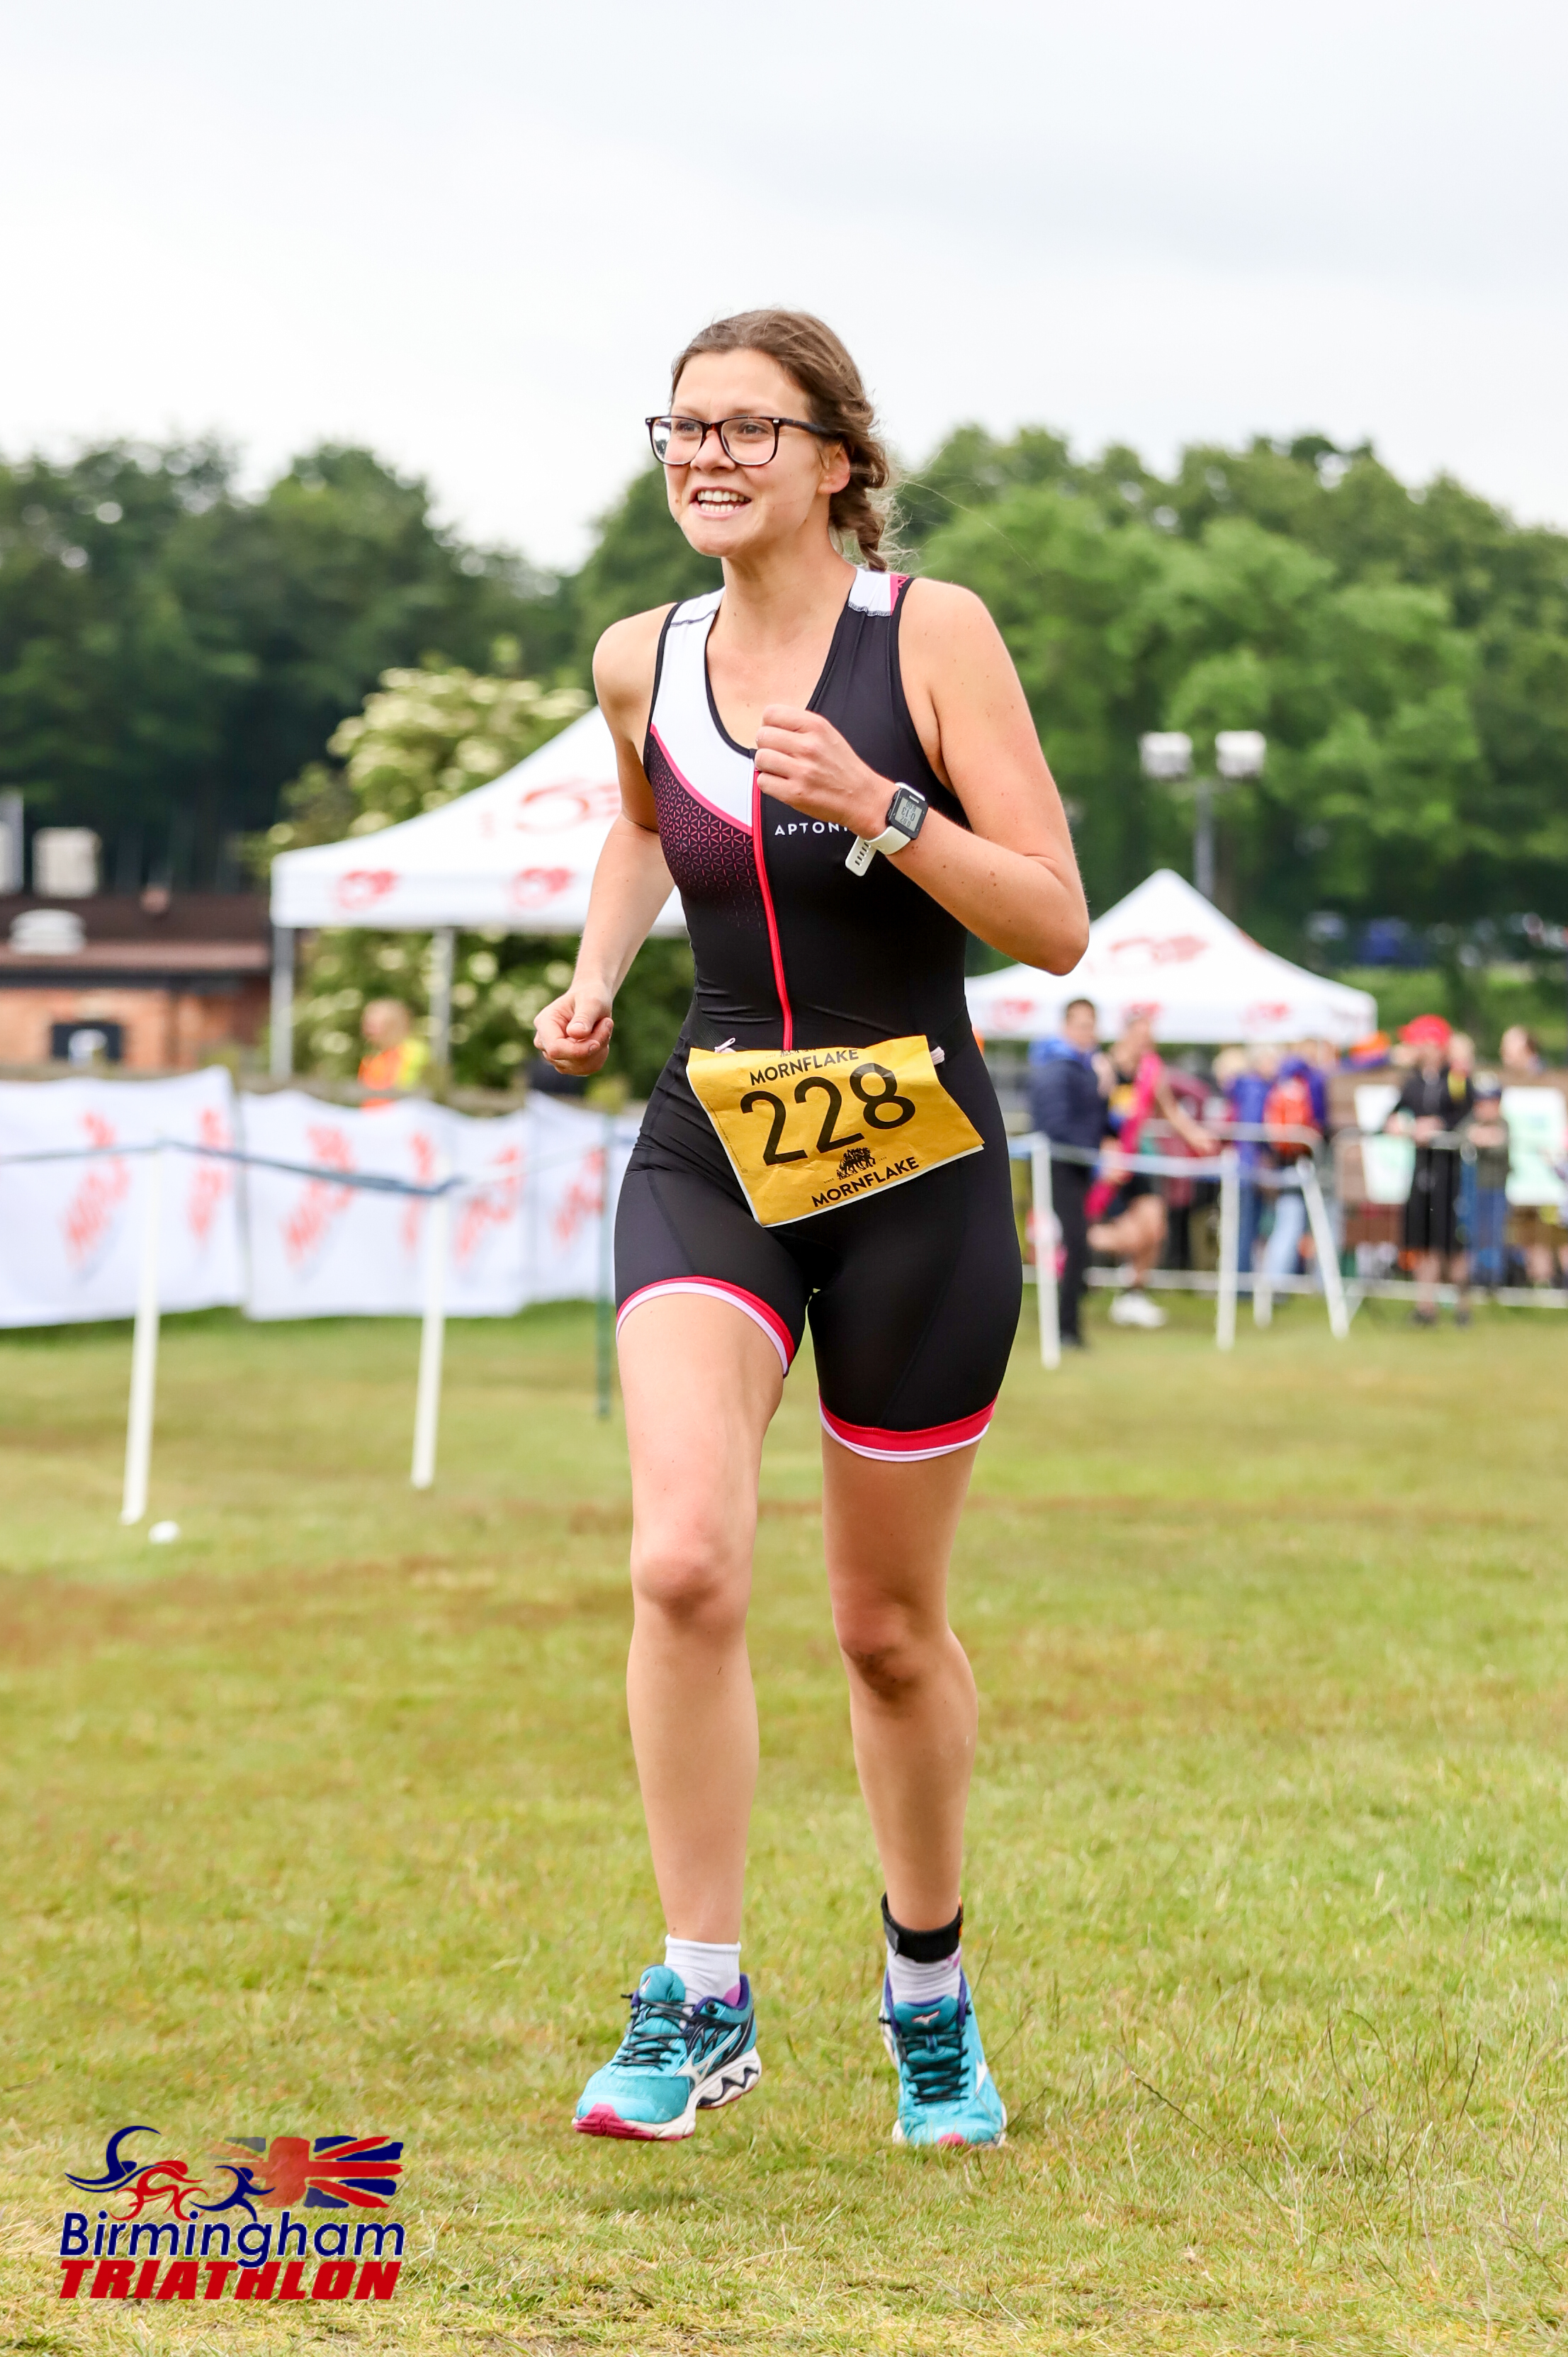 Birmingham_Triathlon_2019-Run-586_.228